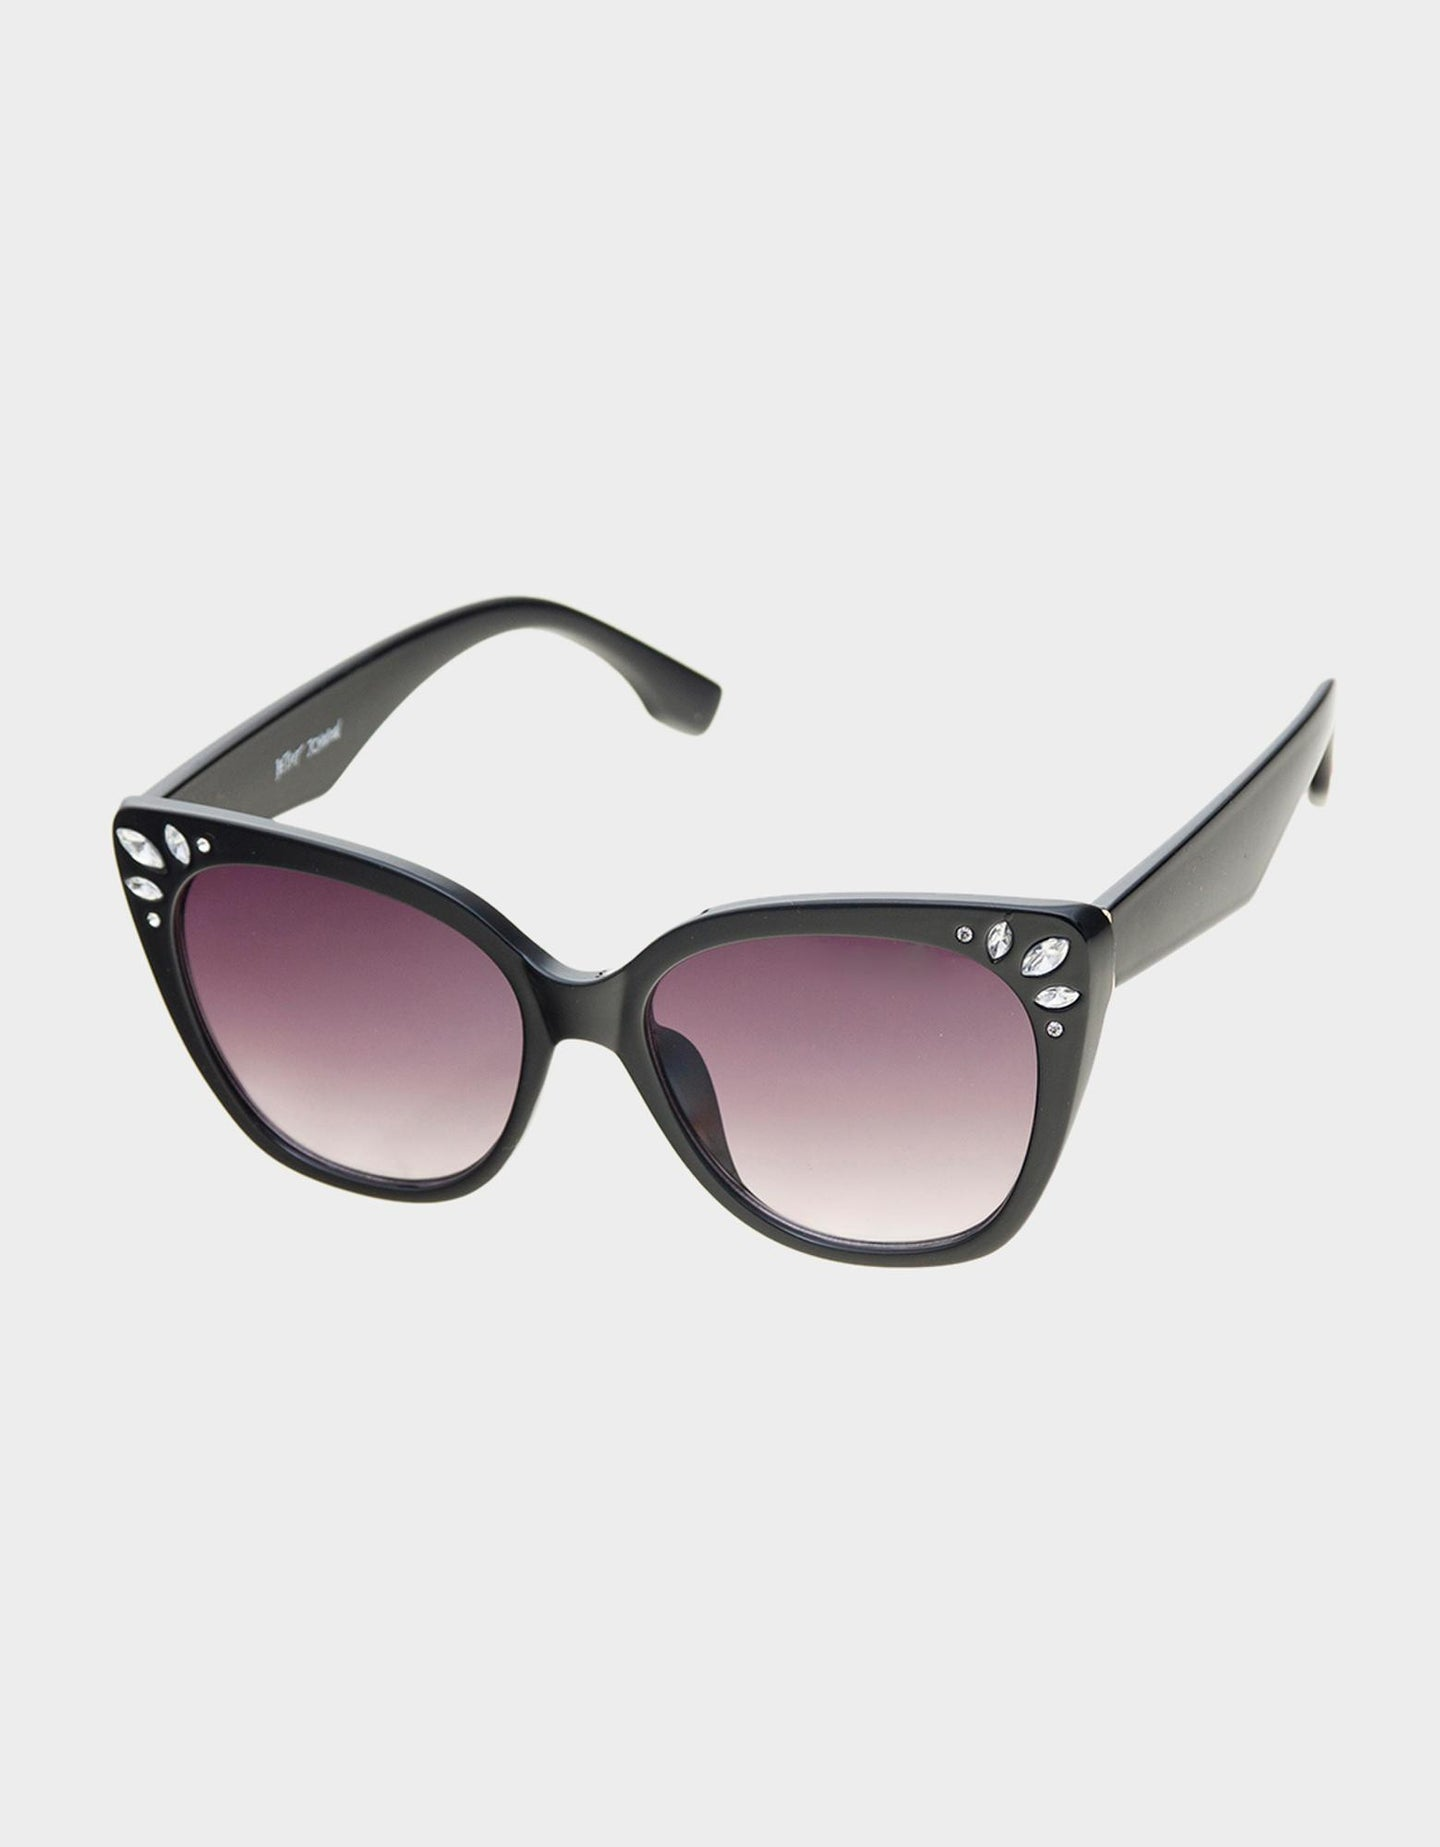 BIT OF BLING SUNGLASSES BLACK - ACCESSORIES - Betsey Johnson